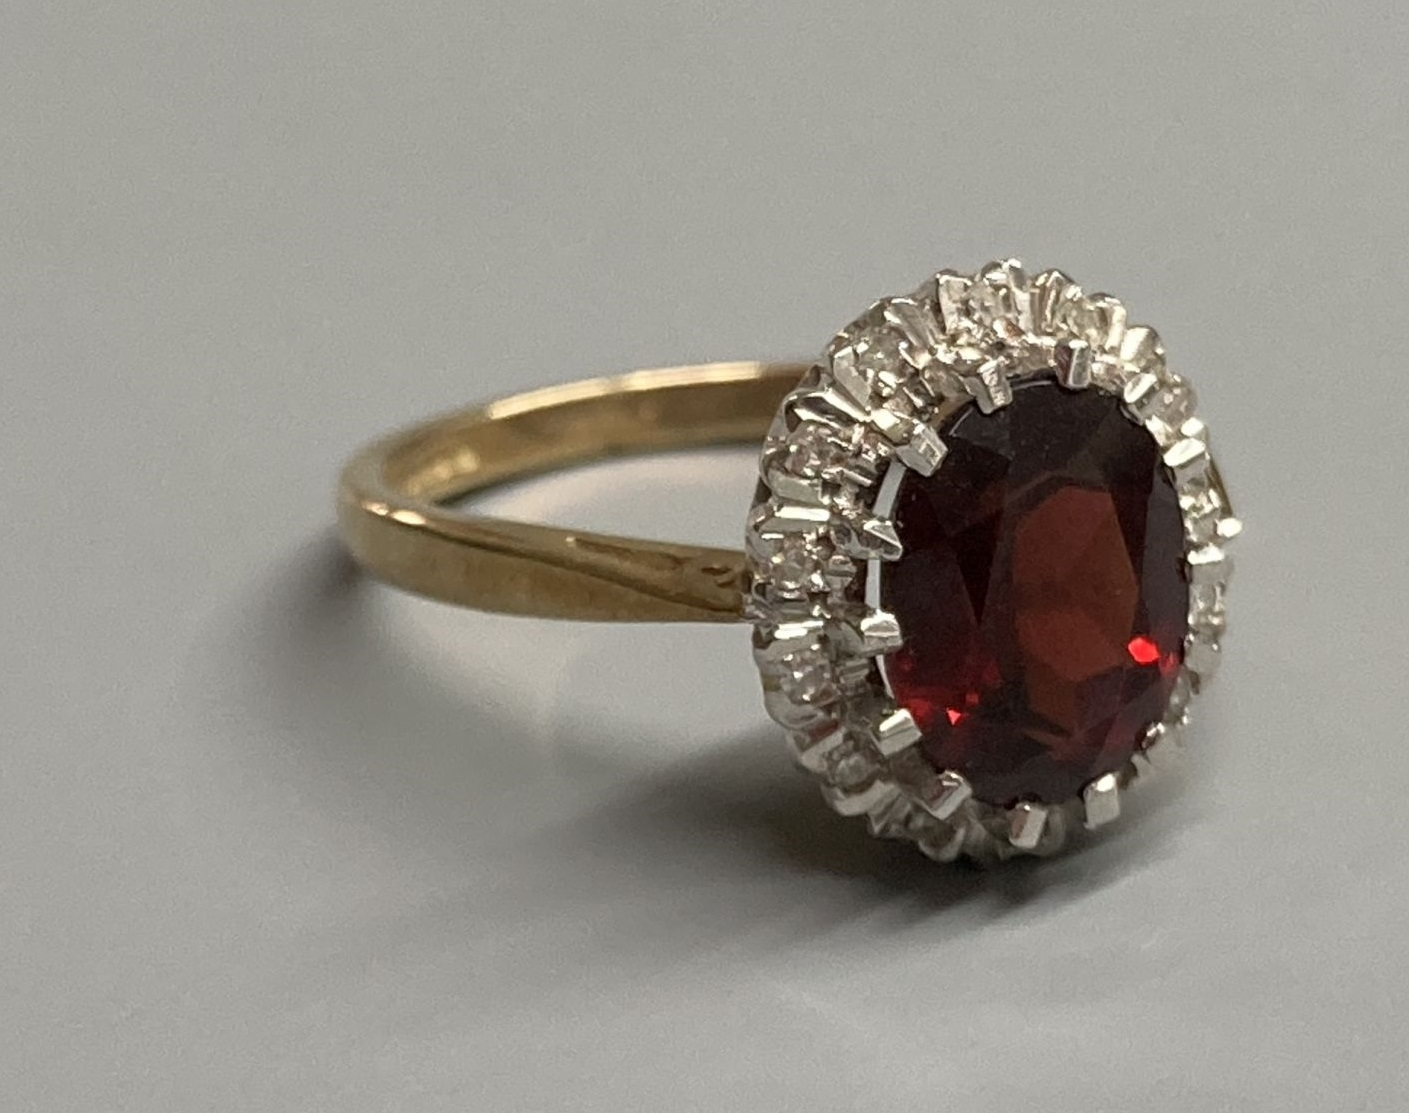 A modern 9ct gold, garnet and diamond set oval cluster ring, size N, gross 3.4 grams.